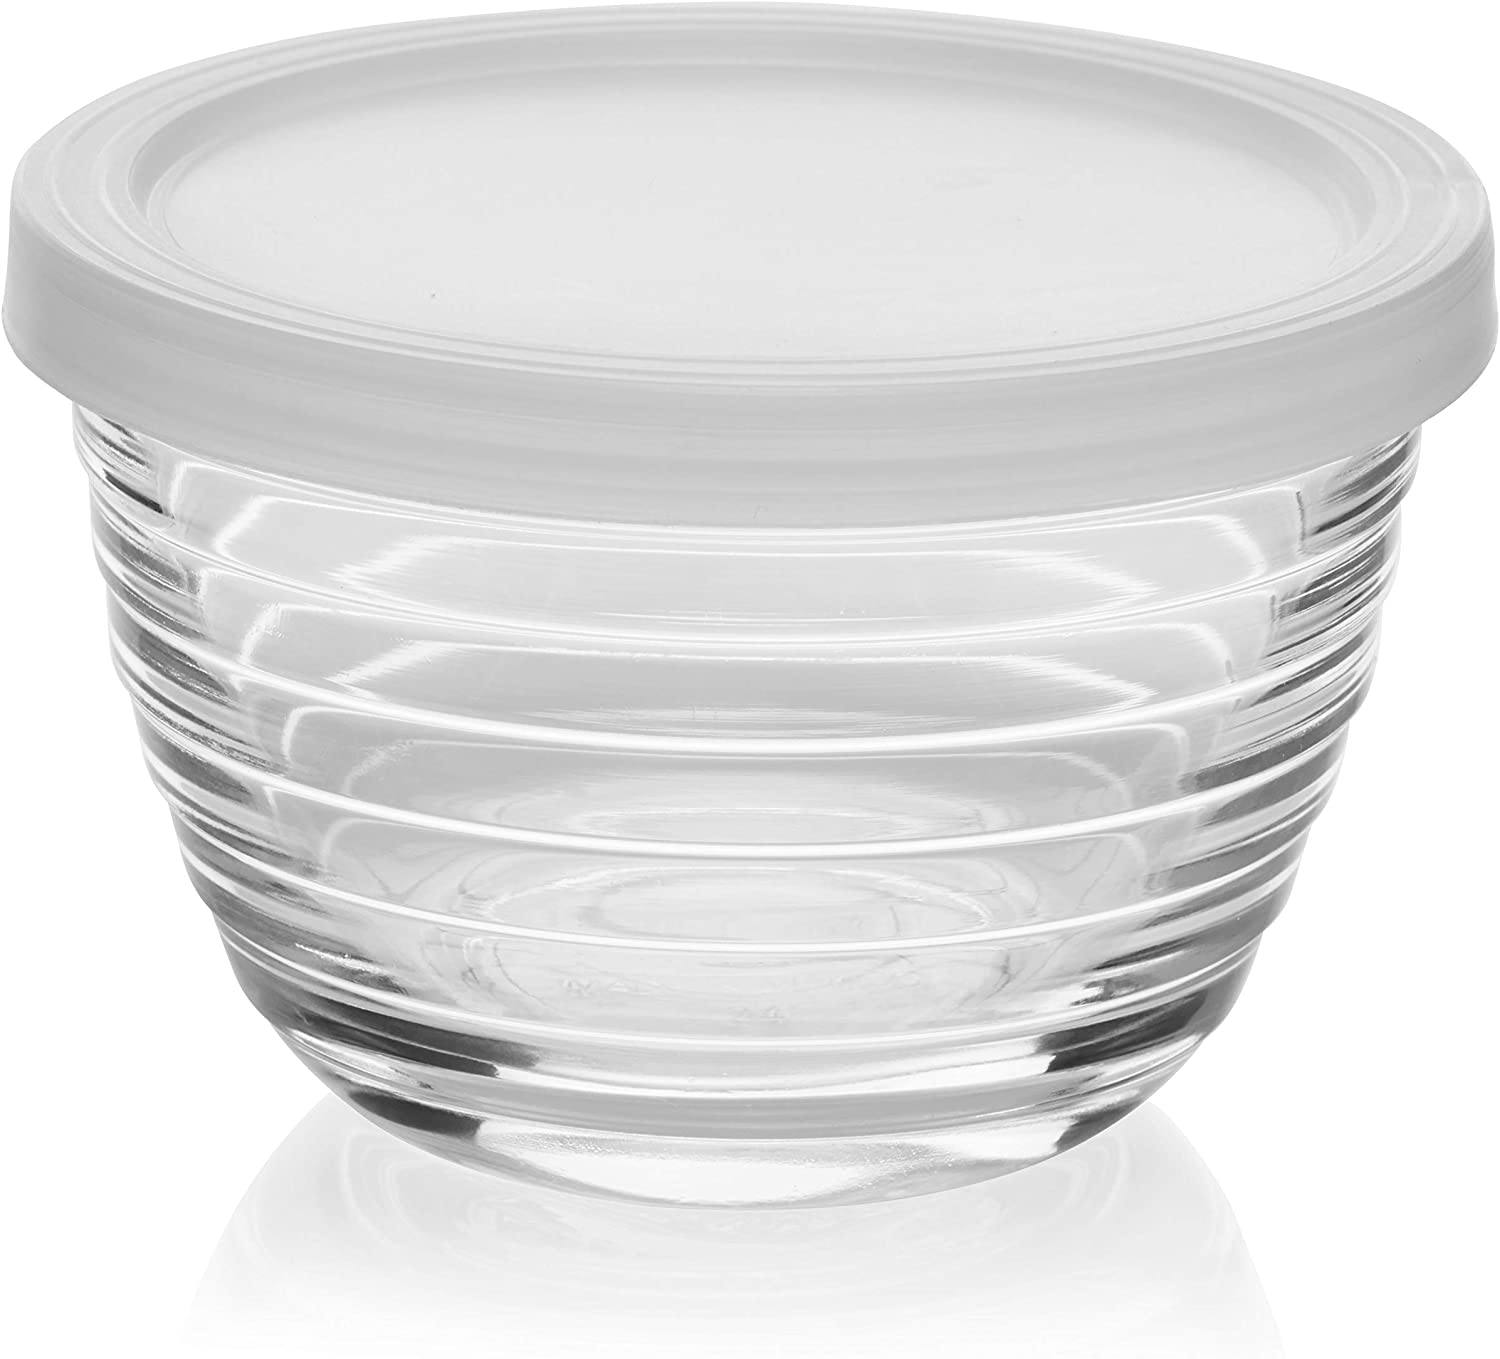 Libbey Small Glass Bowls with Lids, 6.25 ounce, Set of 8, Clear, 3.45-inch -: Kitchen & Dining